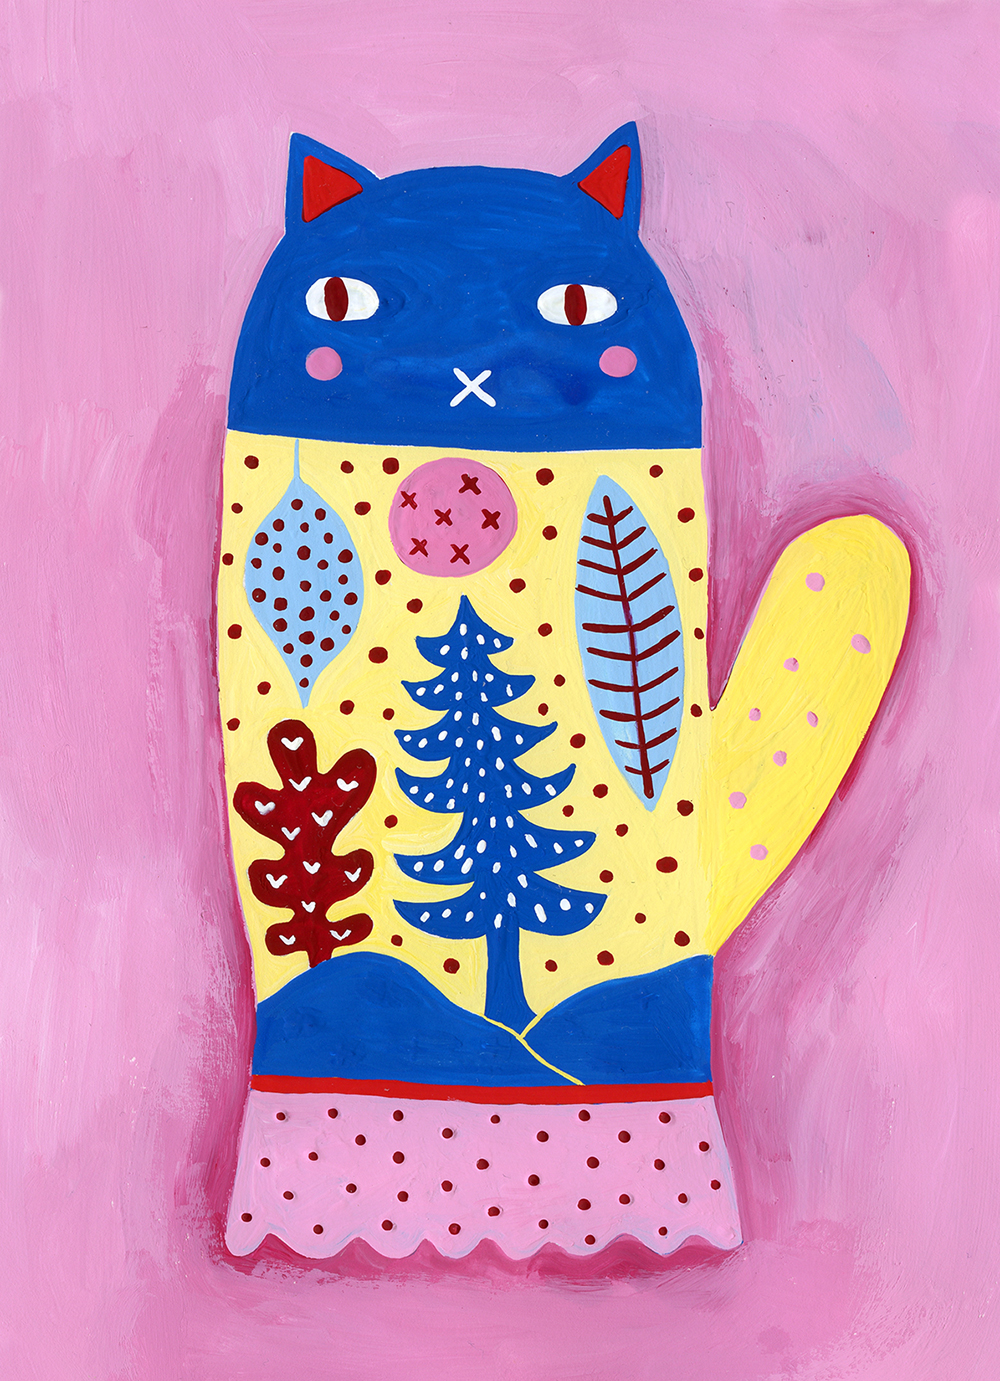 Art Menagerie 2018 Lilla Rogers Christmas cat by Marenthe.jpg